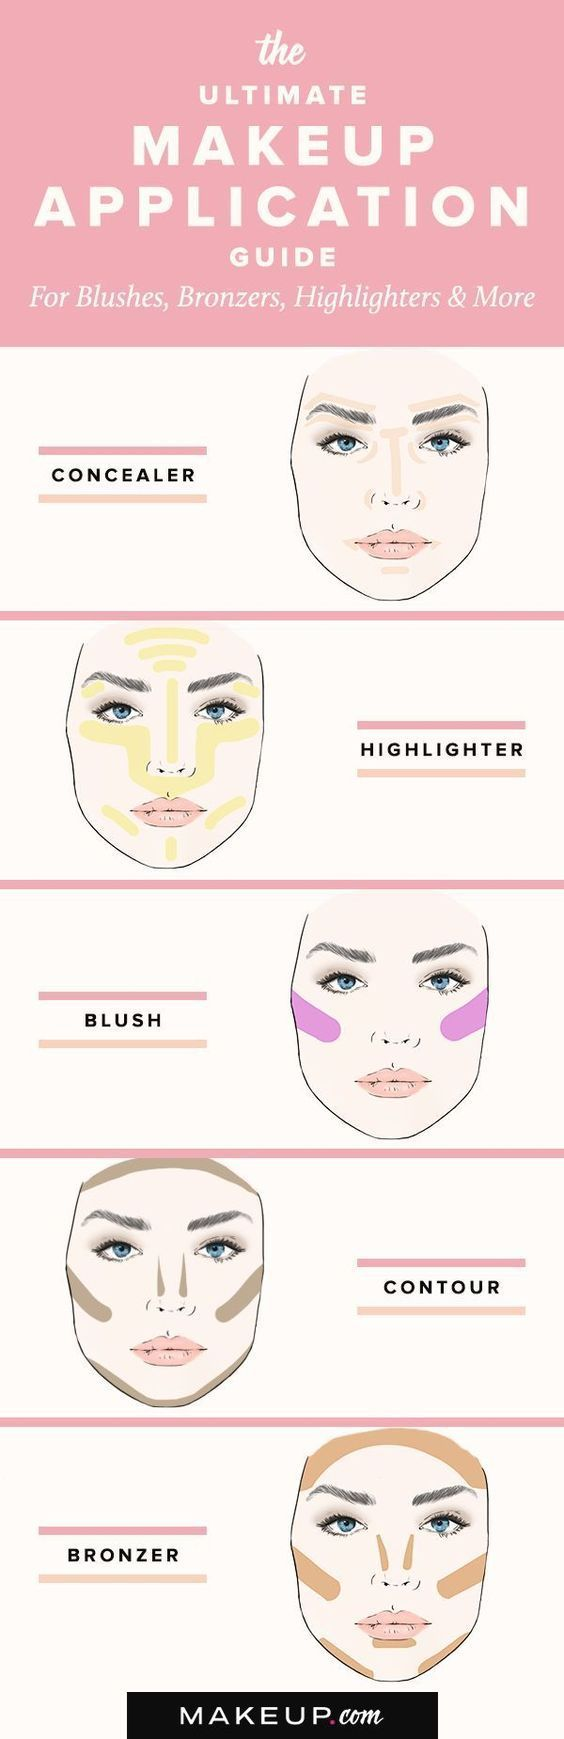 Best Ideas For Makeup Tutorials   : Our ultimate guide for applying concealer, bronzer, highlighter and blush is the...   https://flashmode.org/beauty/make-up/best-ideas-for-makeup-tutorials-our-ultimate-guide-for-applying-concealer-bronzer-highlighter-and-blush-is-the-10/  #Makeup